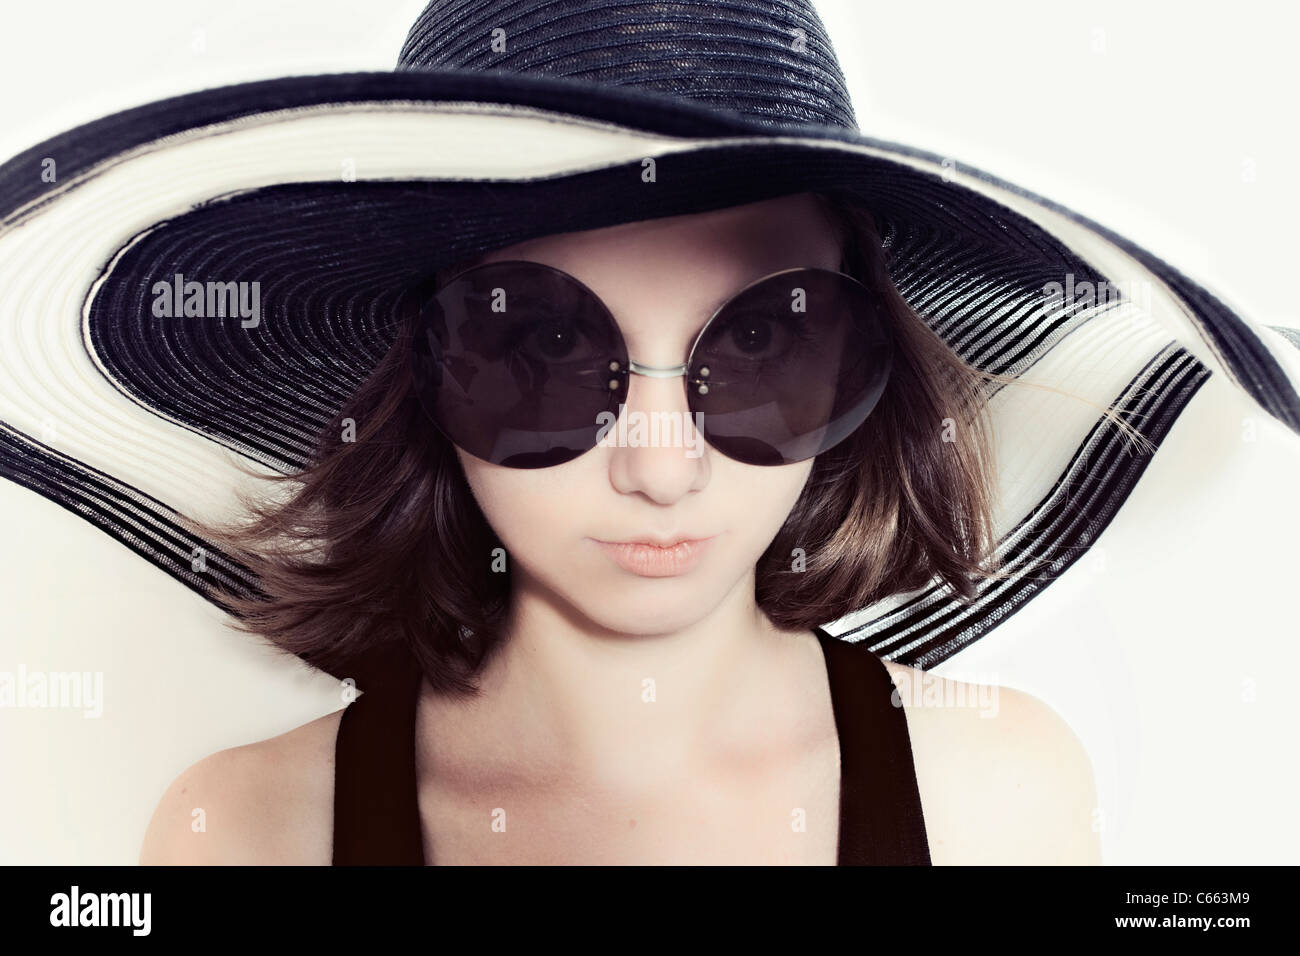 78f9bded30 Portrait of a young girl in a big round sunglasses and summer hat ...